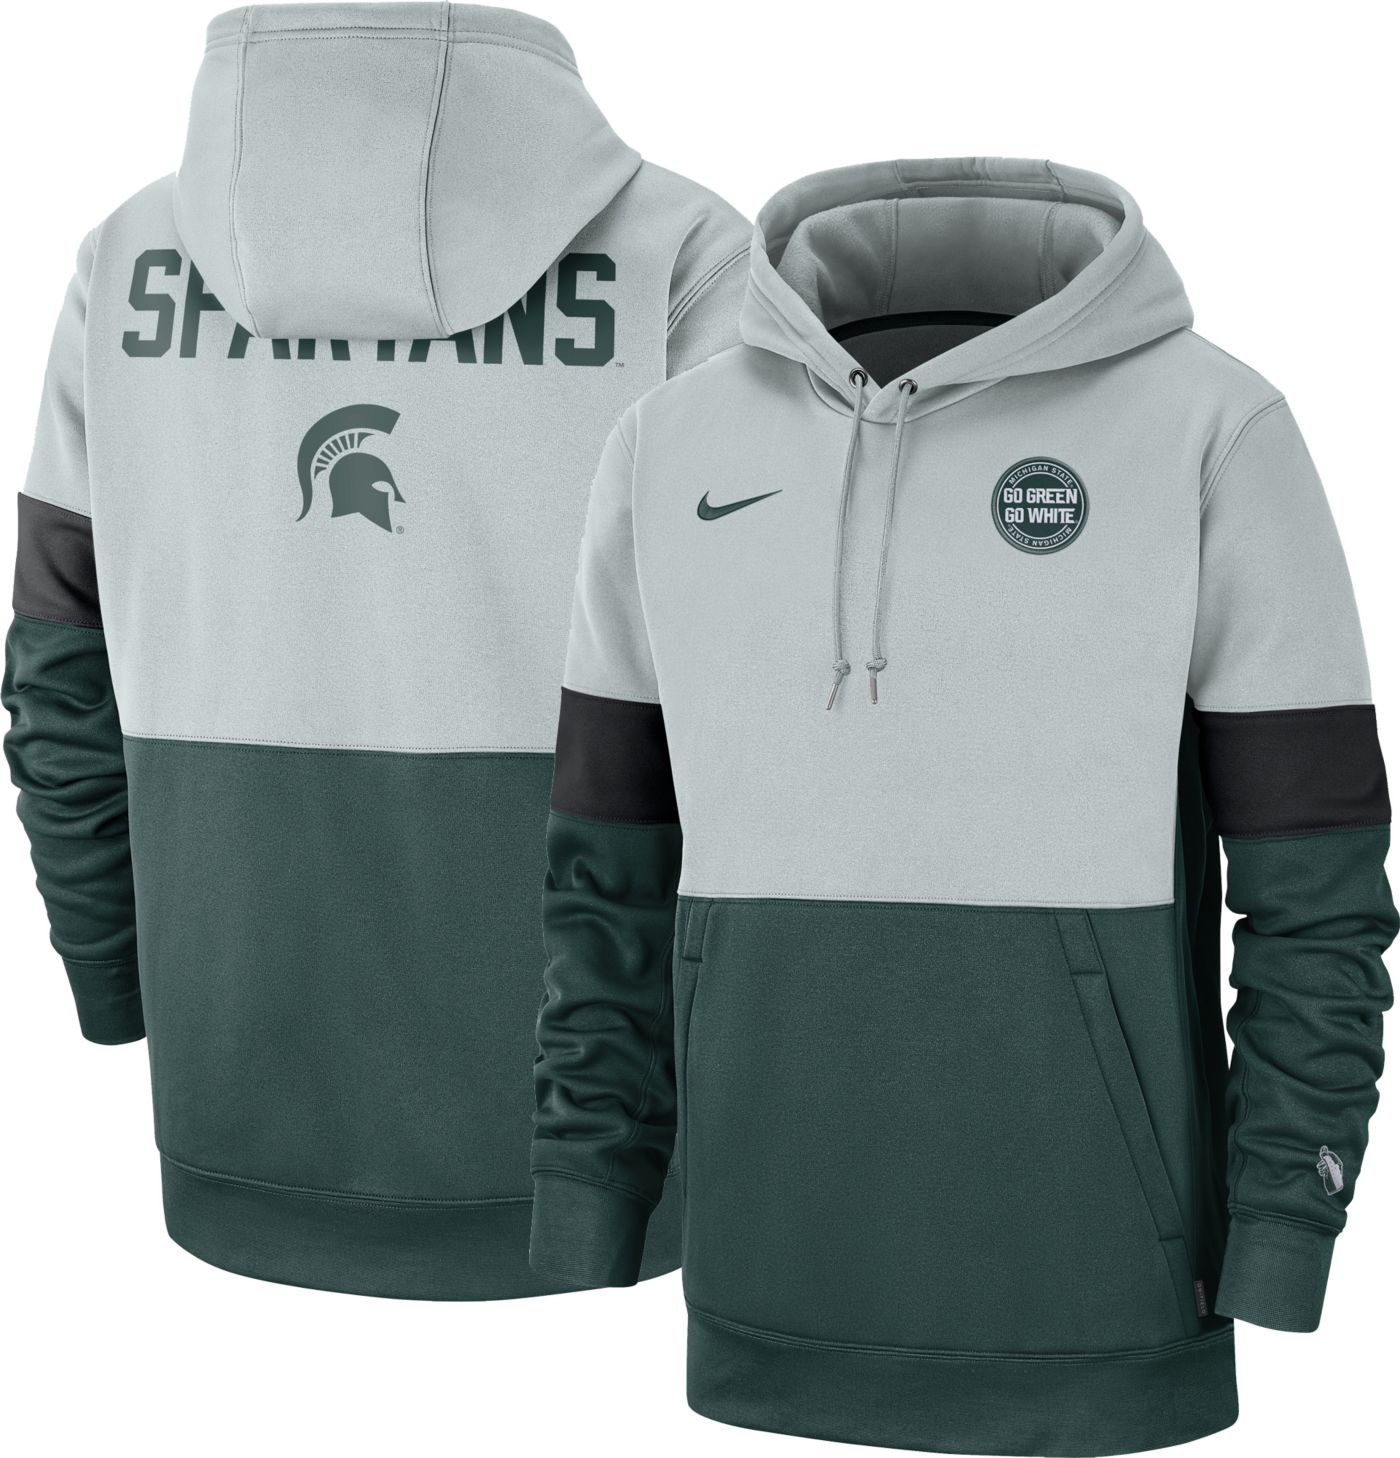 Nike Men's Michigan State Spartans Grey/Green Rivalry Therma Football Sideline Pullover Hoodie